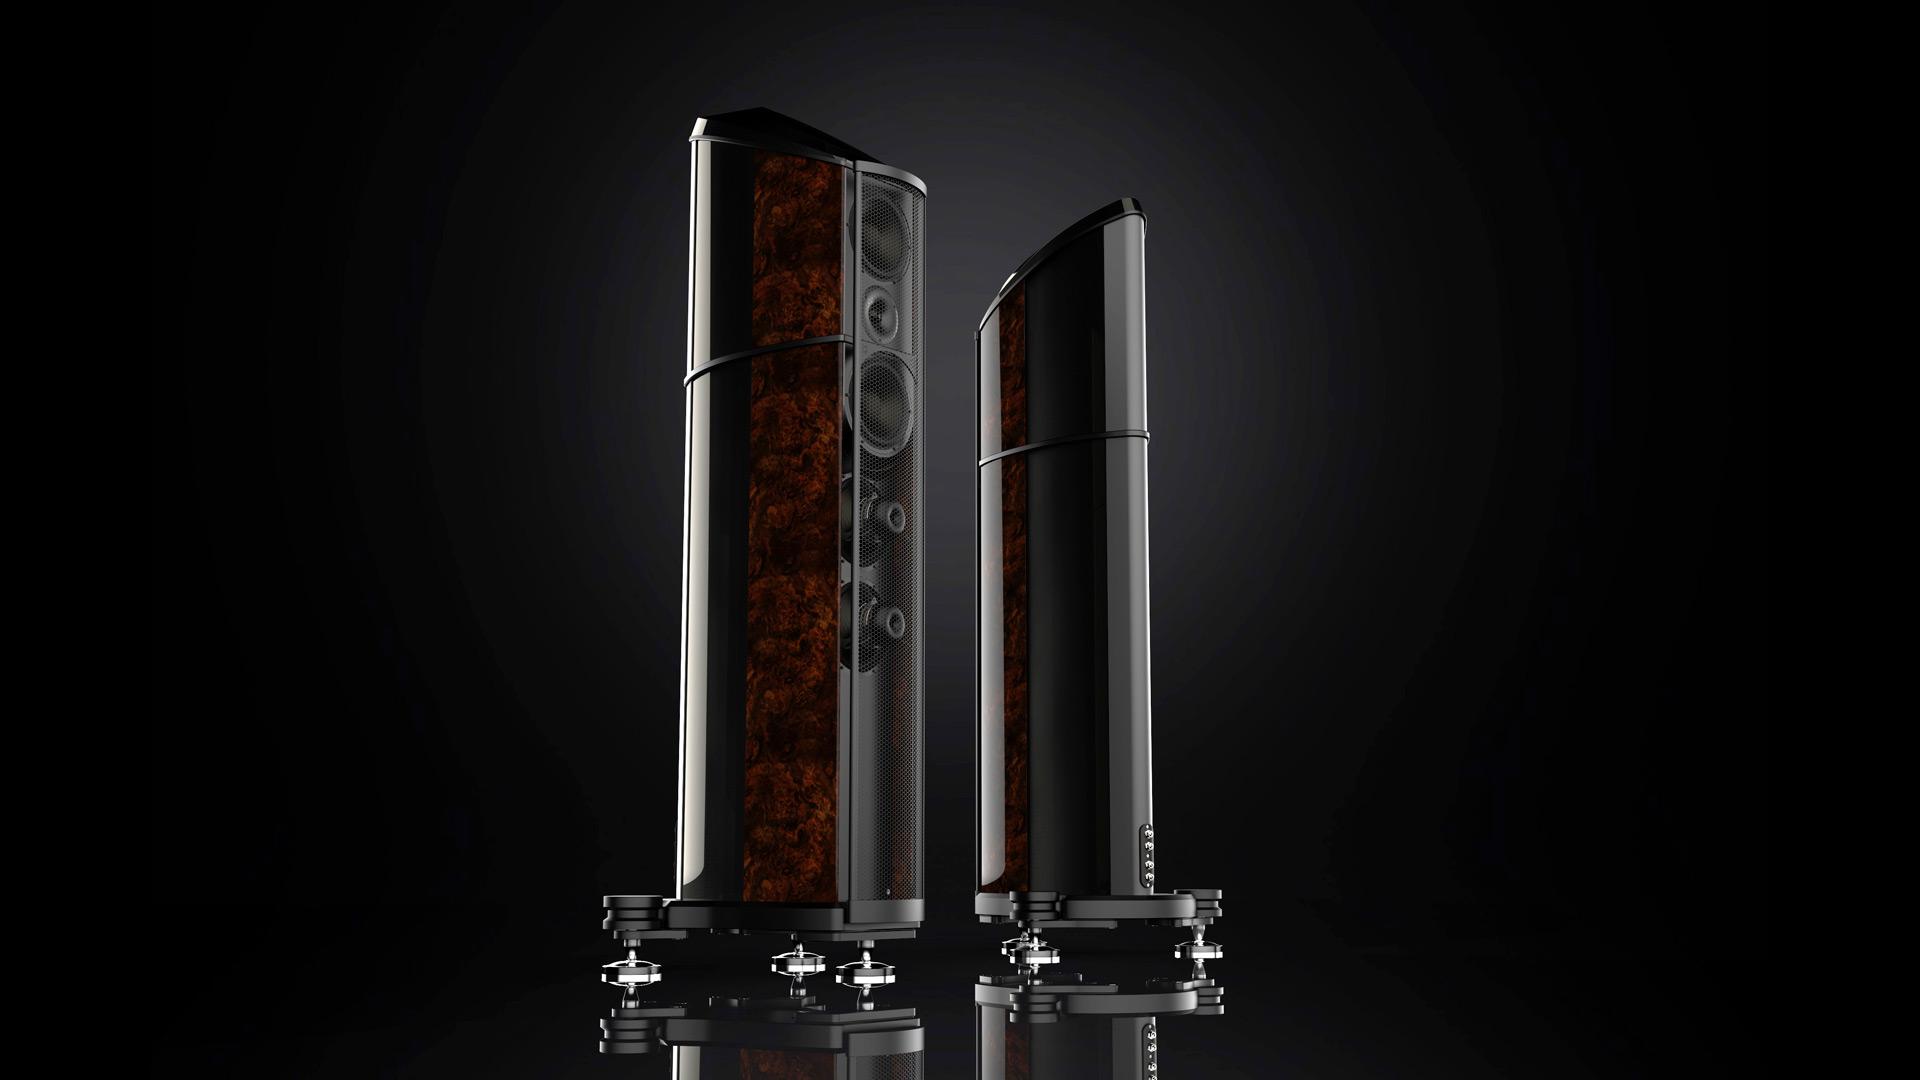 Geometry Series poster showing the Carbon Fibre Resolution floorstanding loudspeaker finished in Burr Walnut Gloss